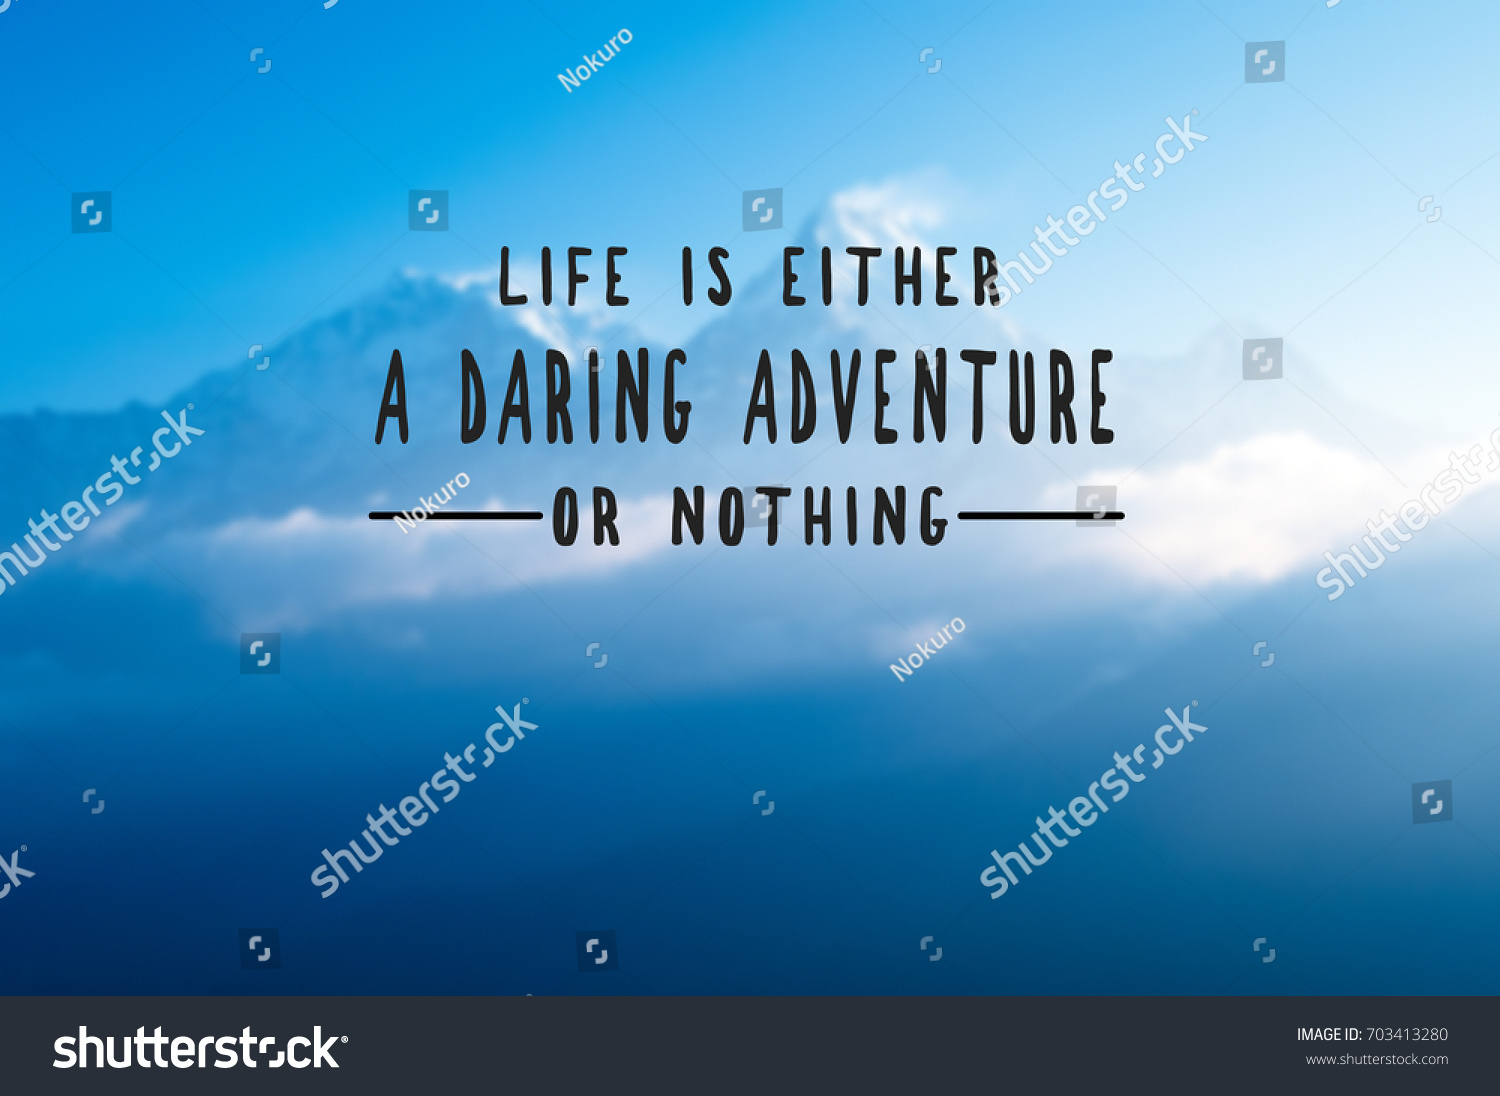 Picture Inspirational Quotes About Life Inspirational Quotes Life Either Daring Adventure Stock Photo